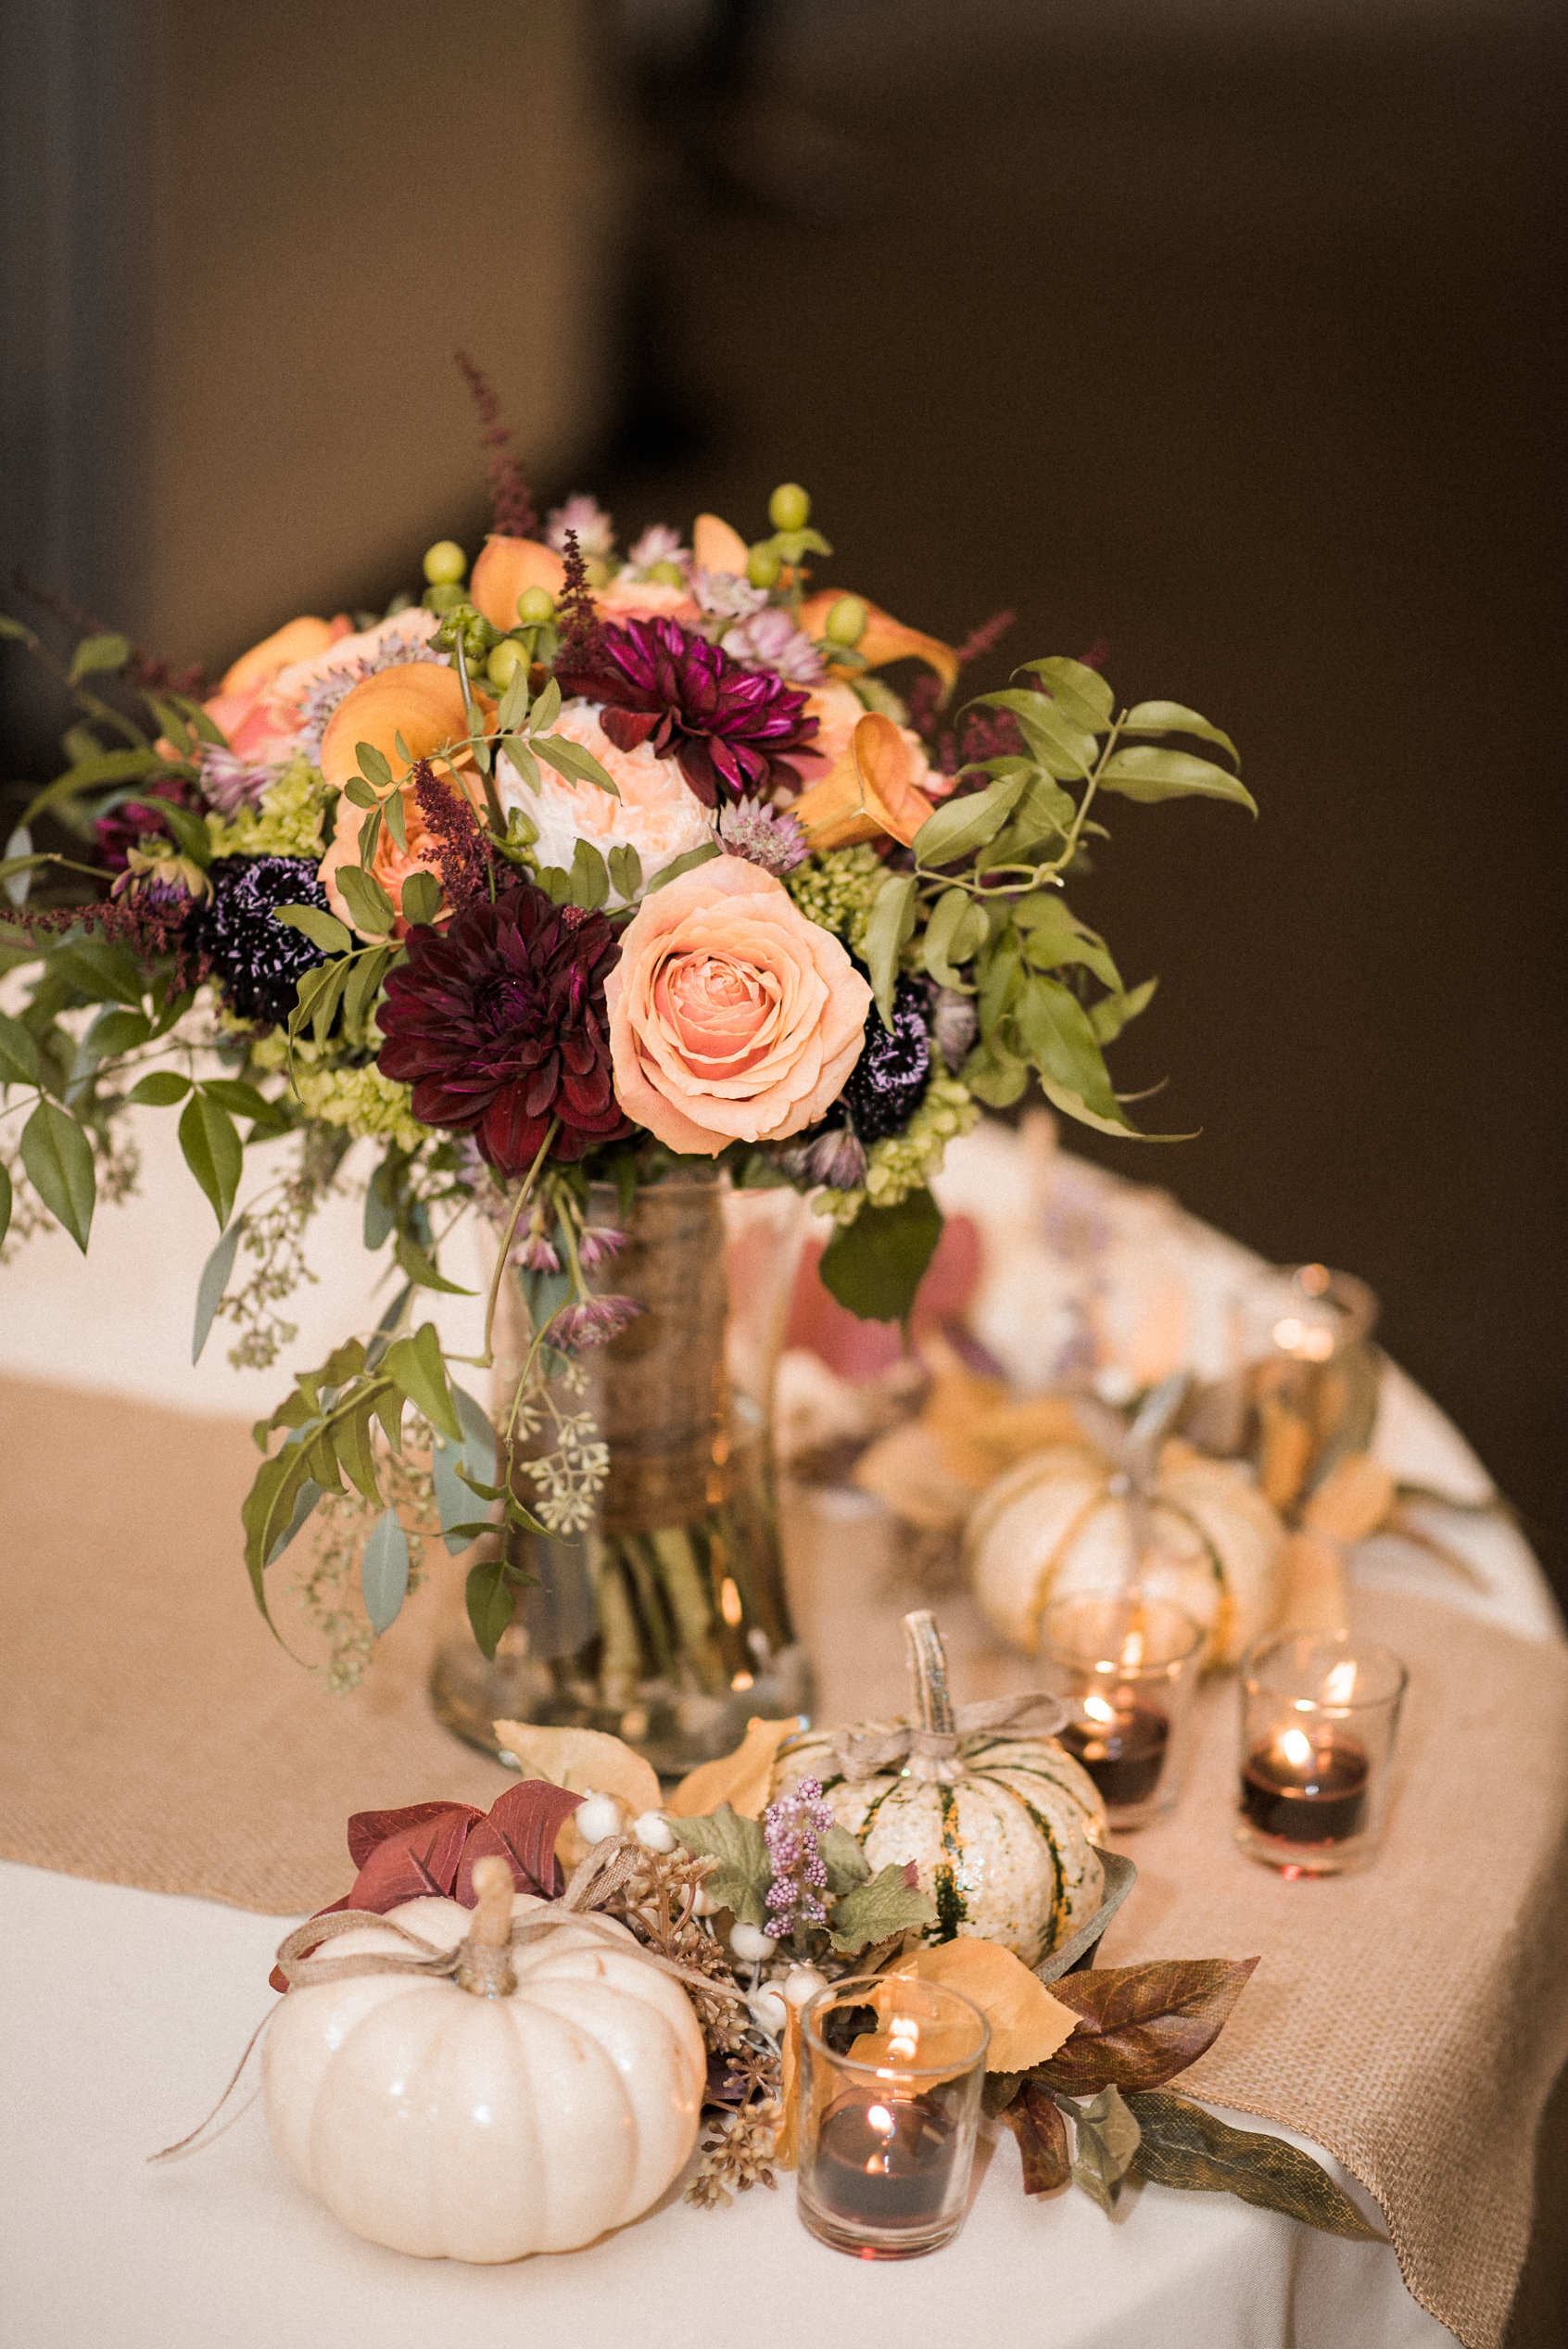 Centerpieces at fall wedding